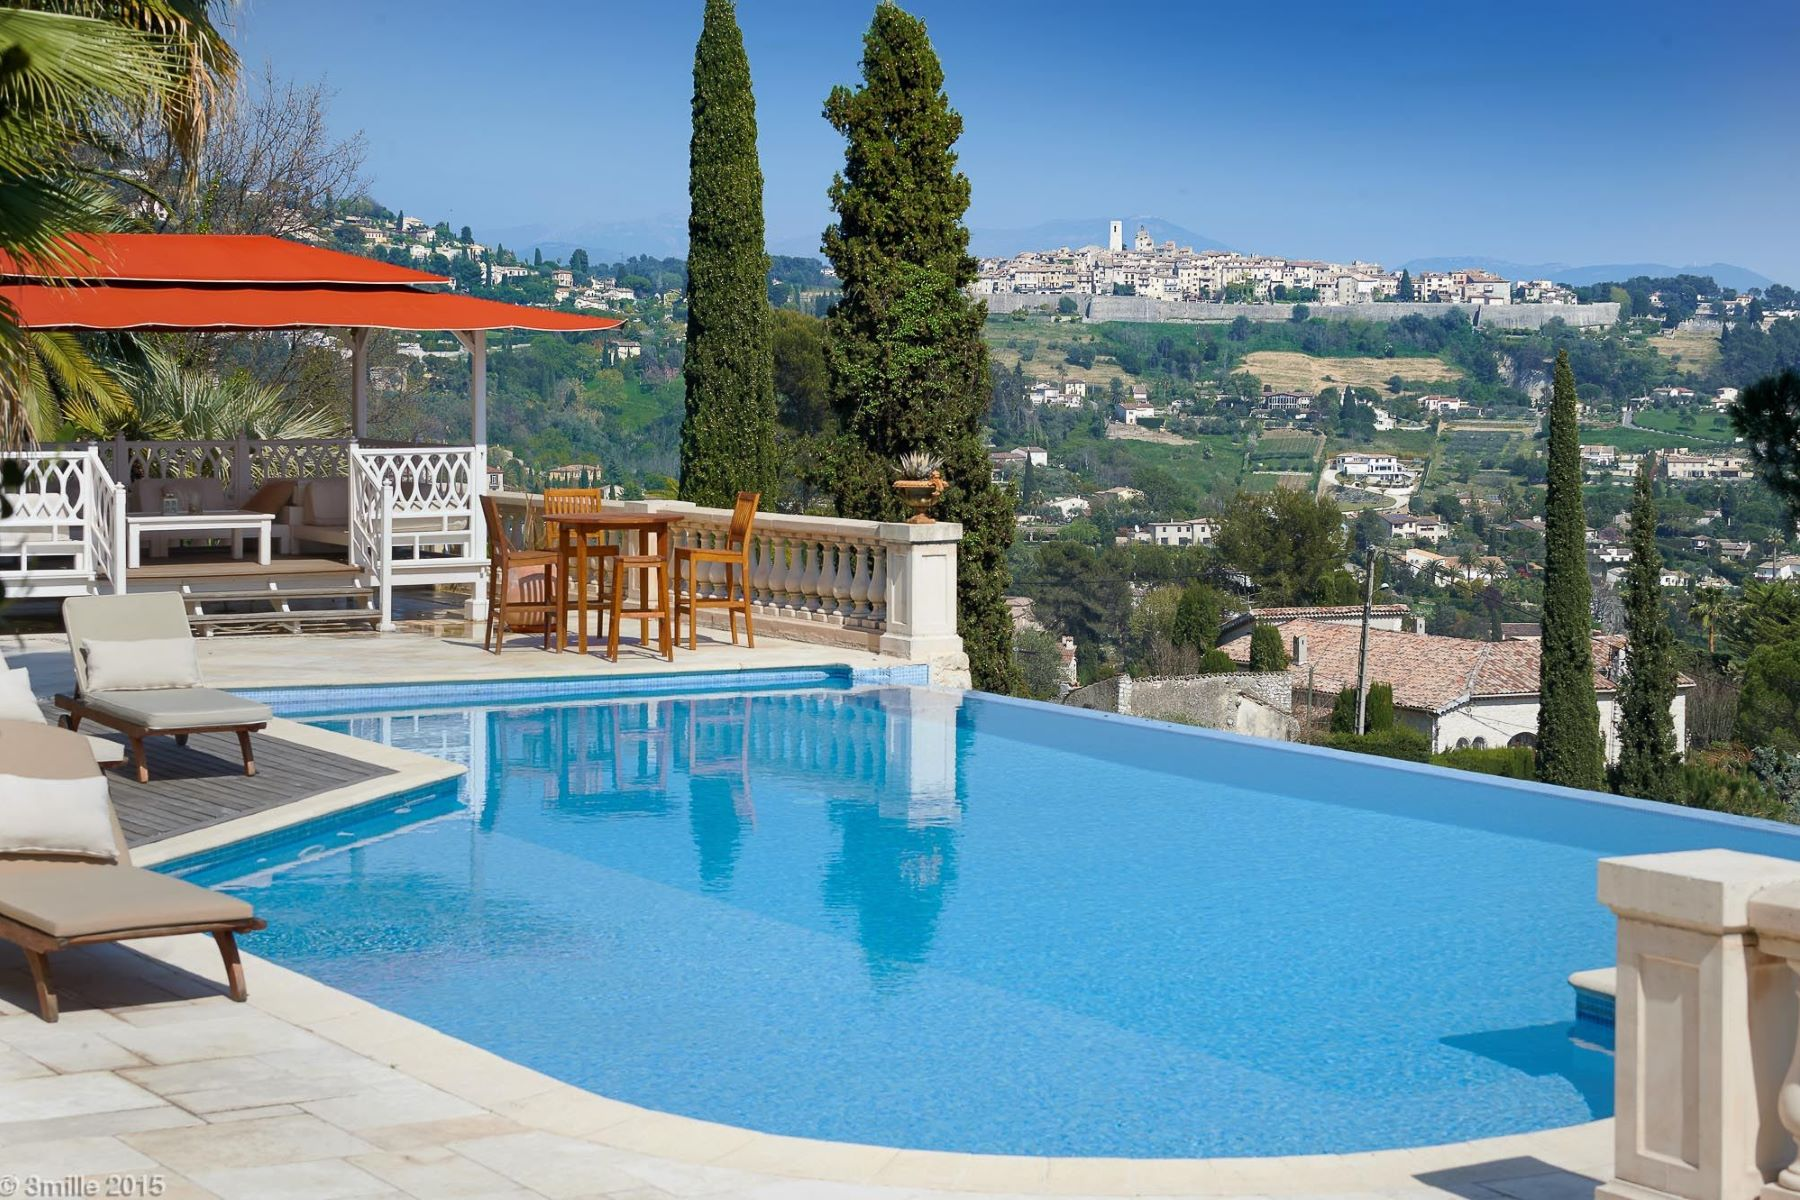 Single Family Home for Sale at Charming and authentic provencal estate in La Colle sur Loup - Sole agent La Colle Sur Loup, Provence-Alpes-Cote D'Azur 06480 France